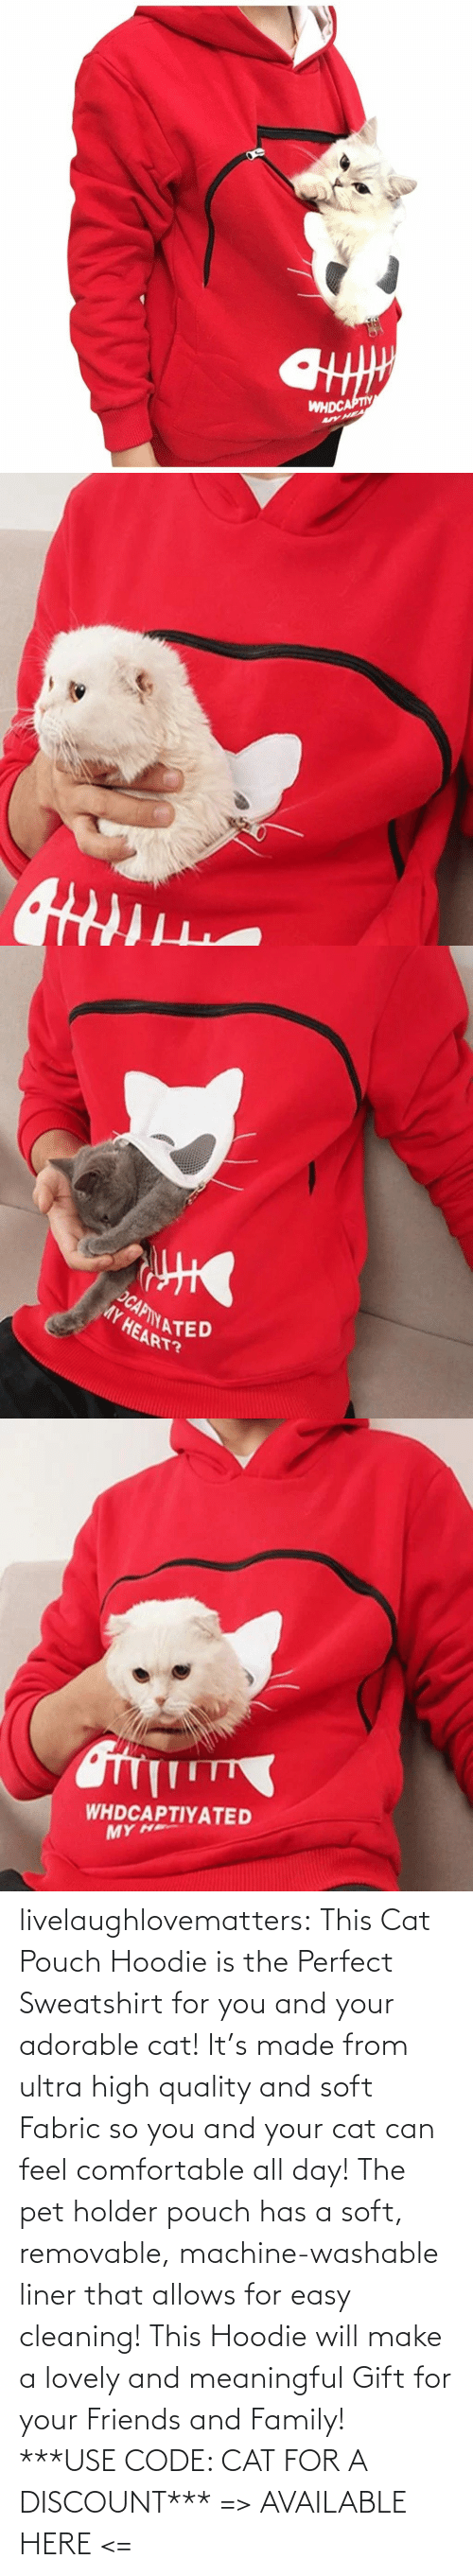 Comfortable, Family, and Friends: livelaughlovematters: This Cat Pouch Hoodie is the Perfect Sweatshirt for you and your adorable cat! It's made from ultra high quality and soft Fabric so you and your cat can feel comfortable all day!The pet holder pouch has a soft, removable, machine-washable liner that allows for easy cleaning! This Hoodie will make a lovely and meaningful Gift for your Friends and Family! ***USE CODE: CATFOR A DISCOUNT*** => AVAILABLE HERE <=